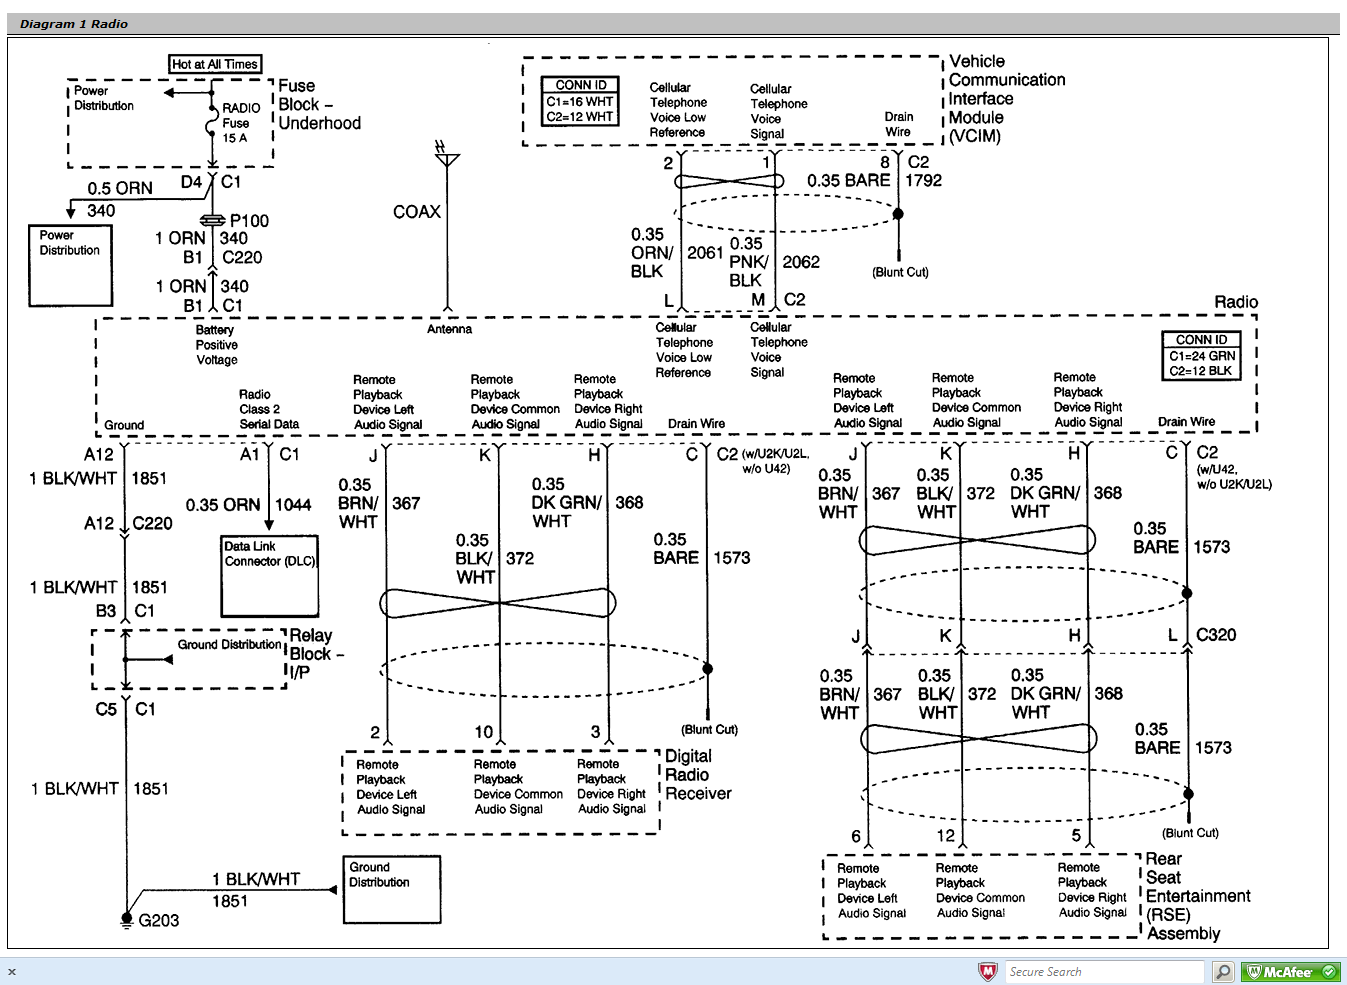 2002 Gmc Sierra Radio Wiring Diagram - Schematics Wiring Diagrams •